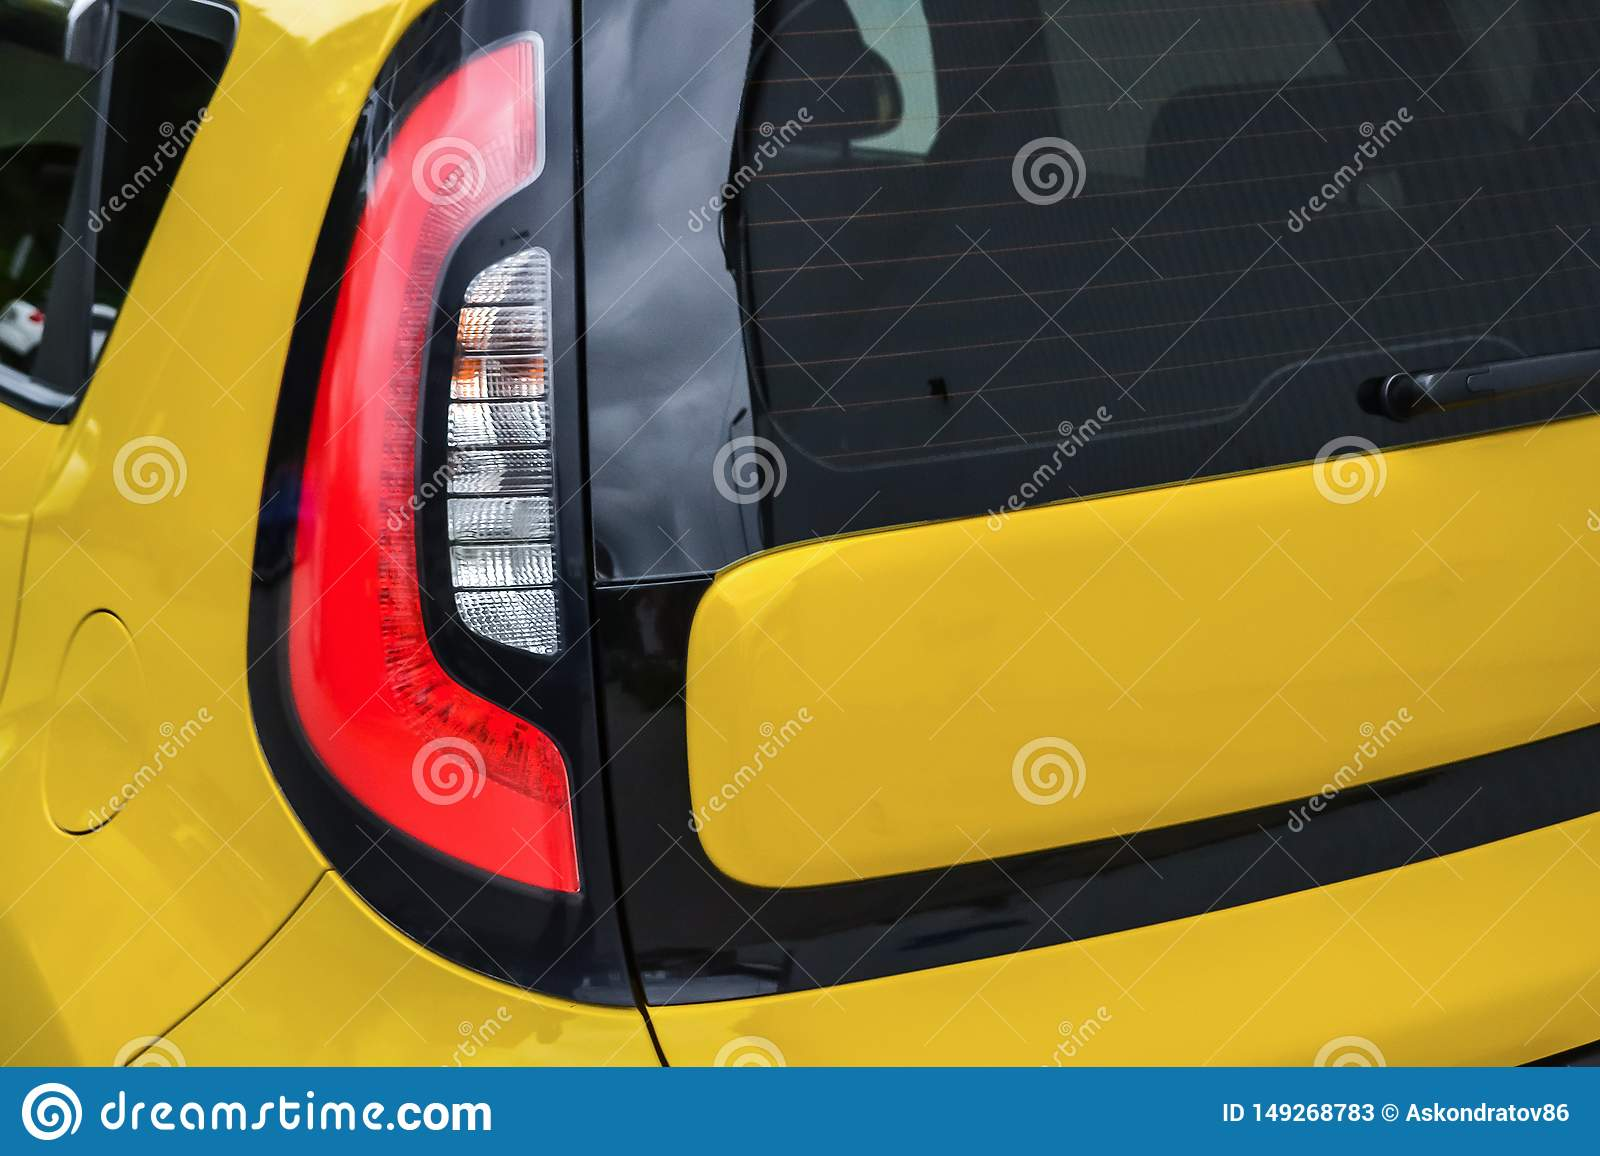 Rear taillamp view of used car in yellow color after cleaning before sale inday